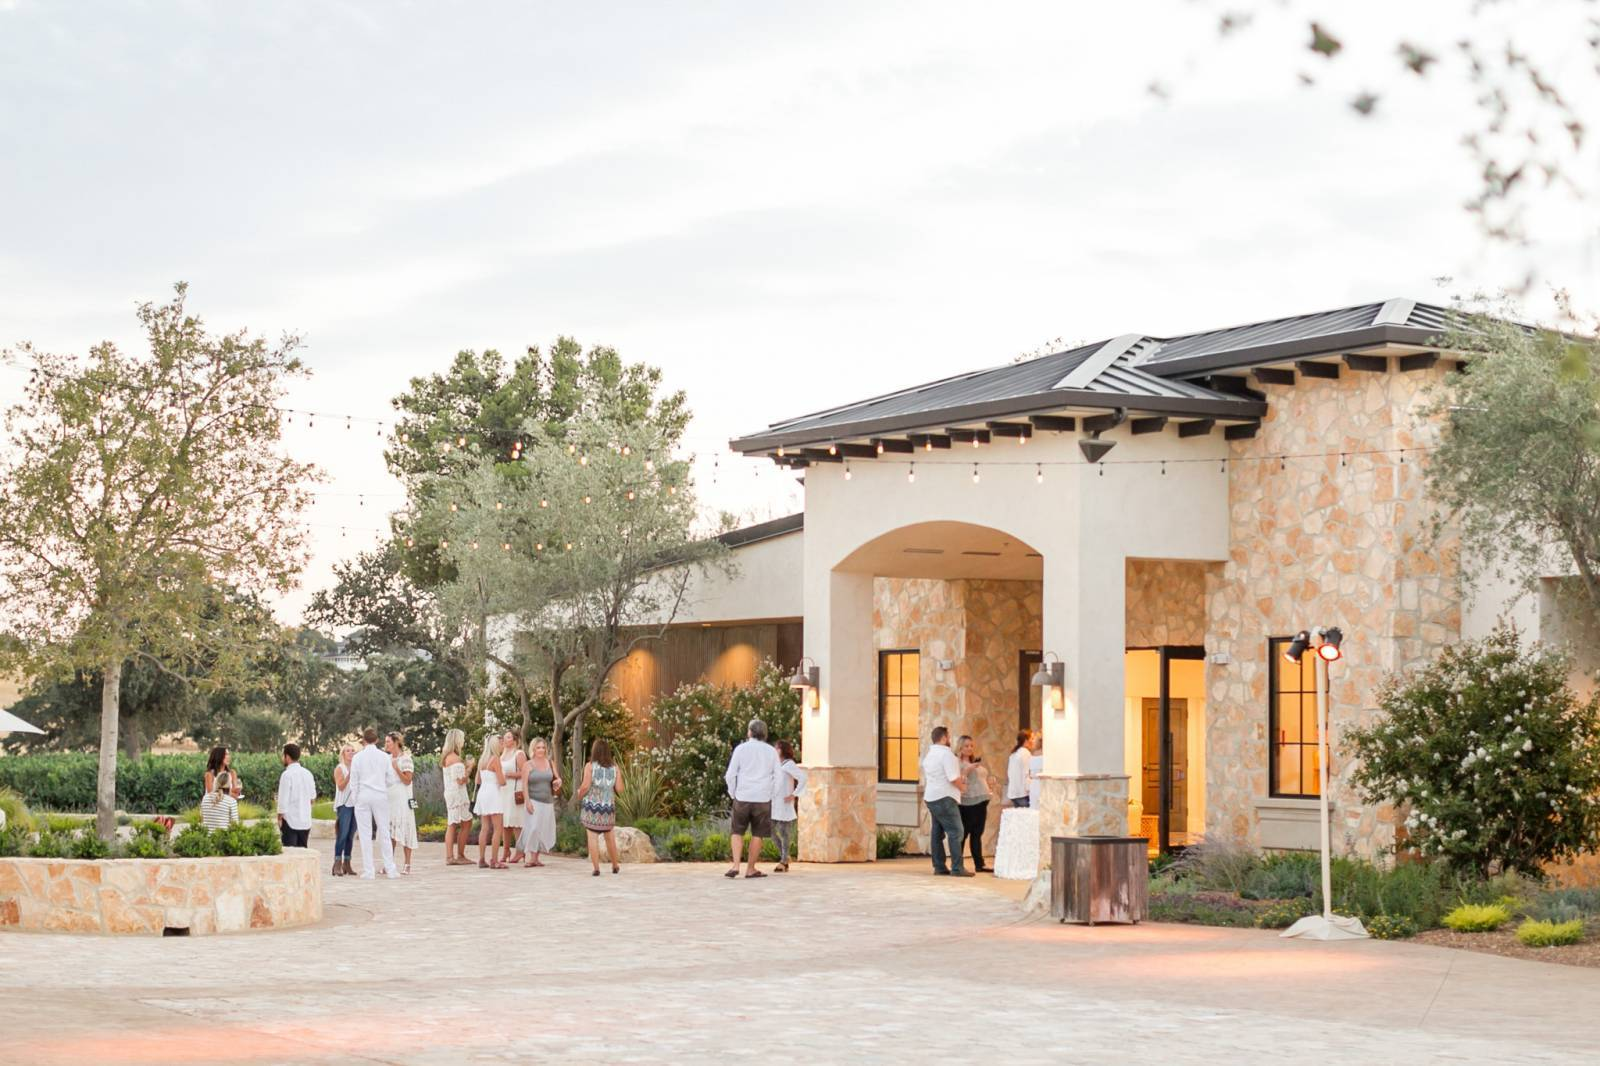 The Brand New Paso Robles Winery Wedding Venue Rava Wines Hosted Standard Members For An End Of Summer White Party Everyone Dressed In